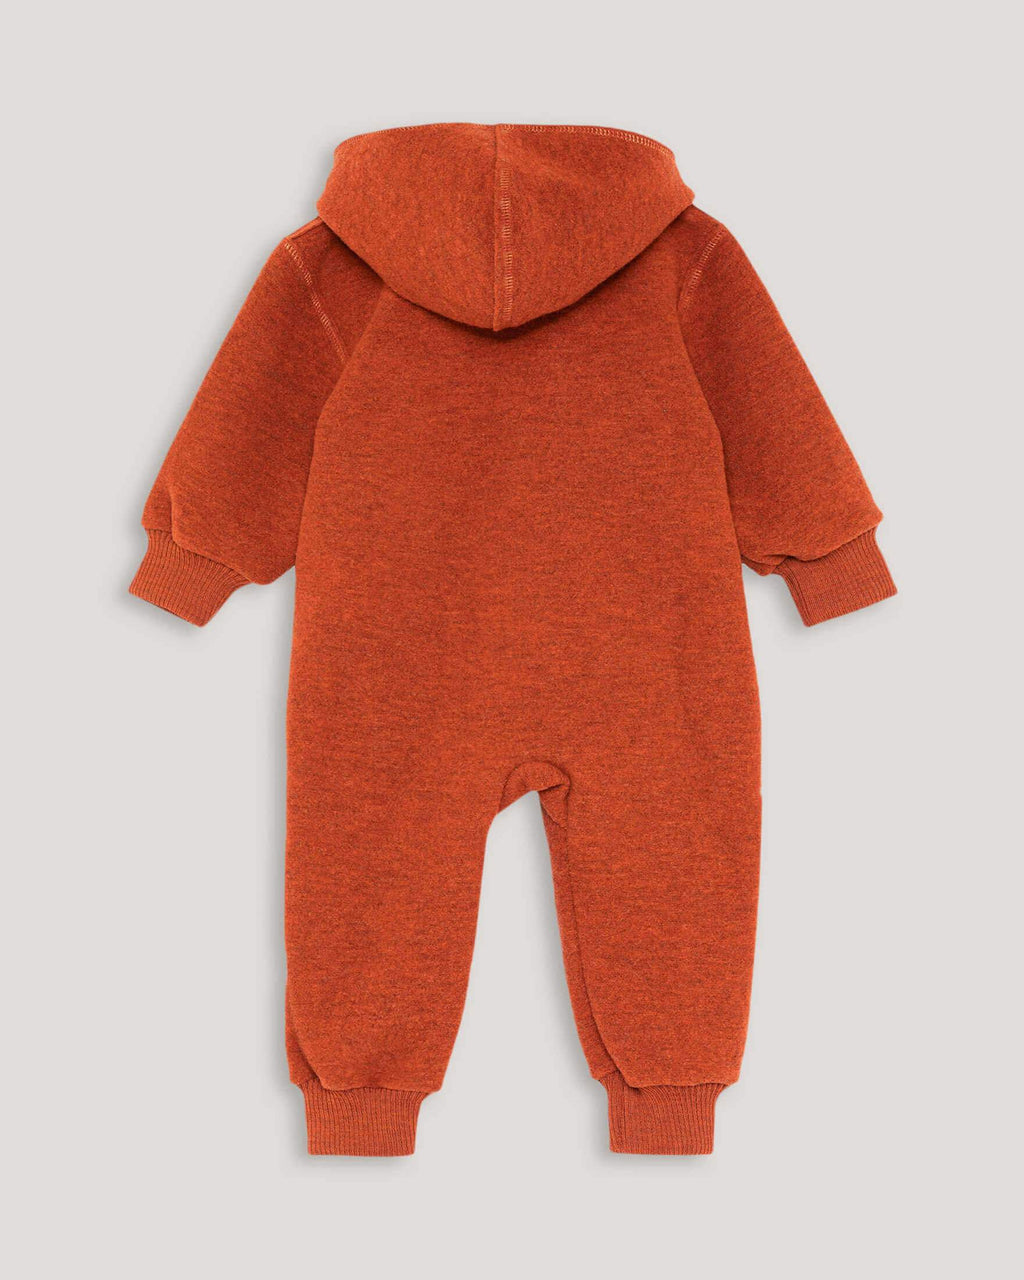 variant_1 | EN Orange Overall Baby Kids | DE Orange Overall Baby Kinder mit Kapuze